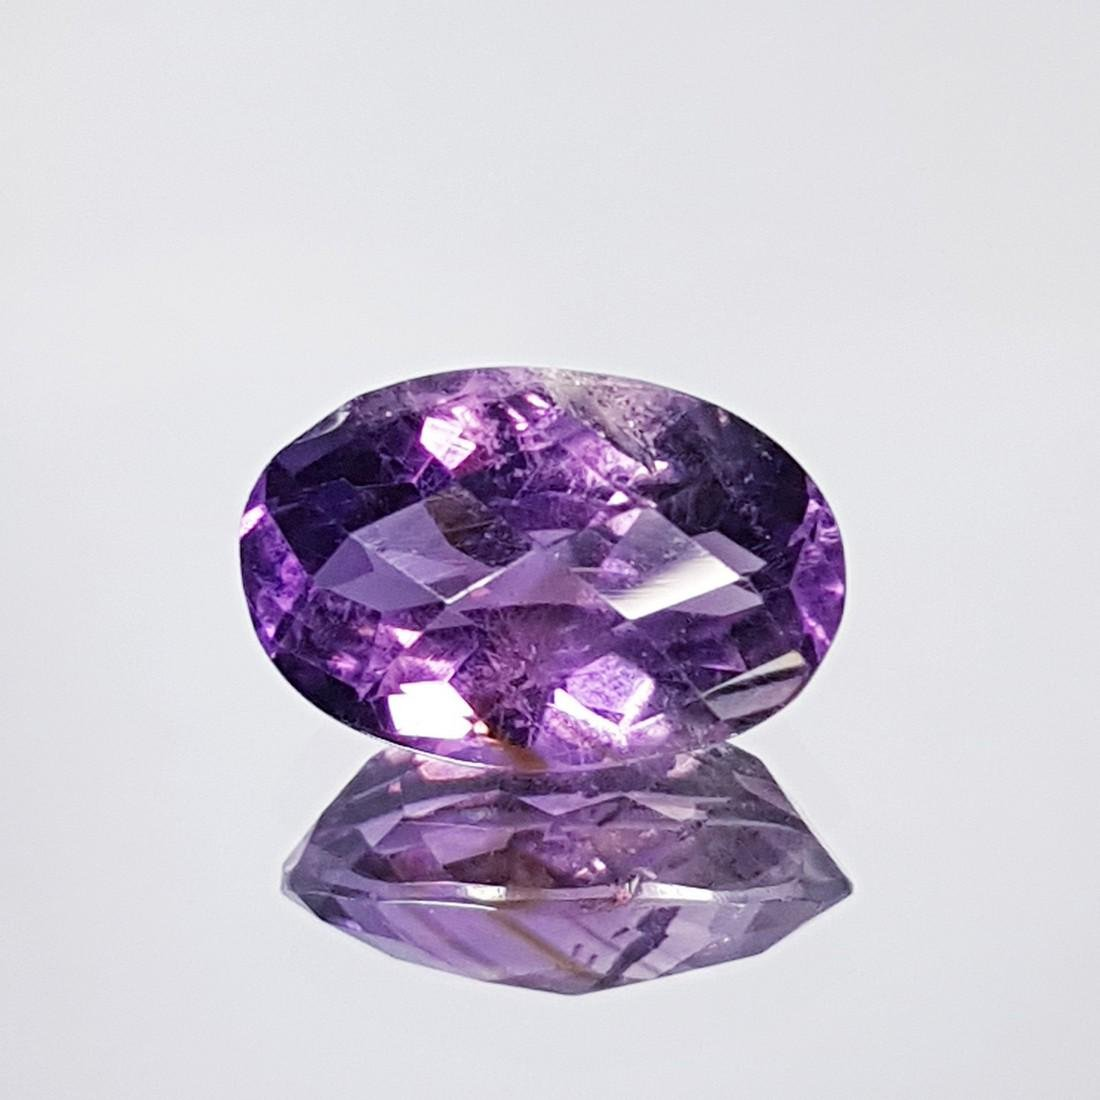 Stunning Luster Natural Amethyst - 7.15 ct